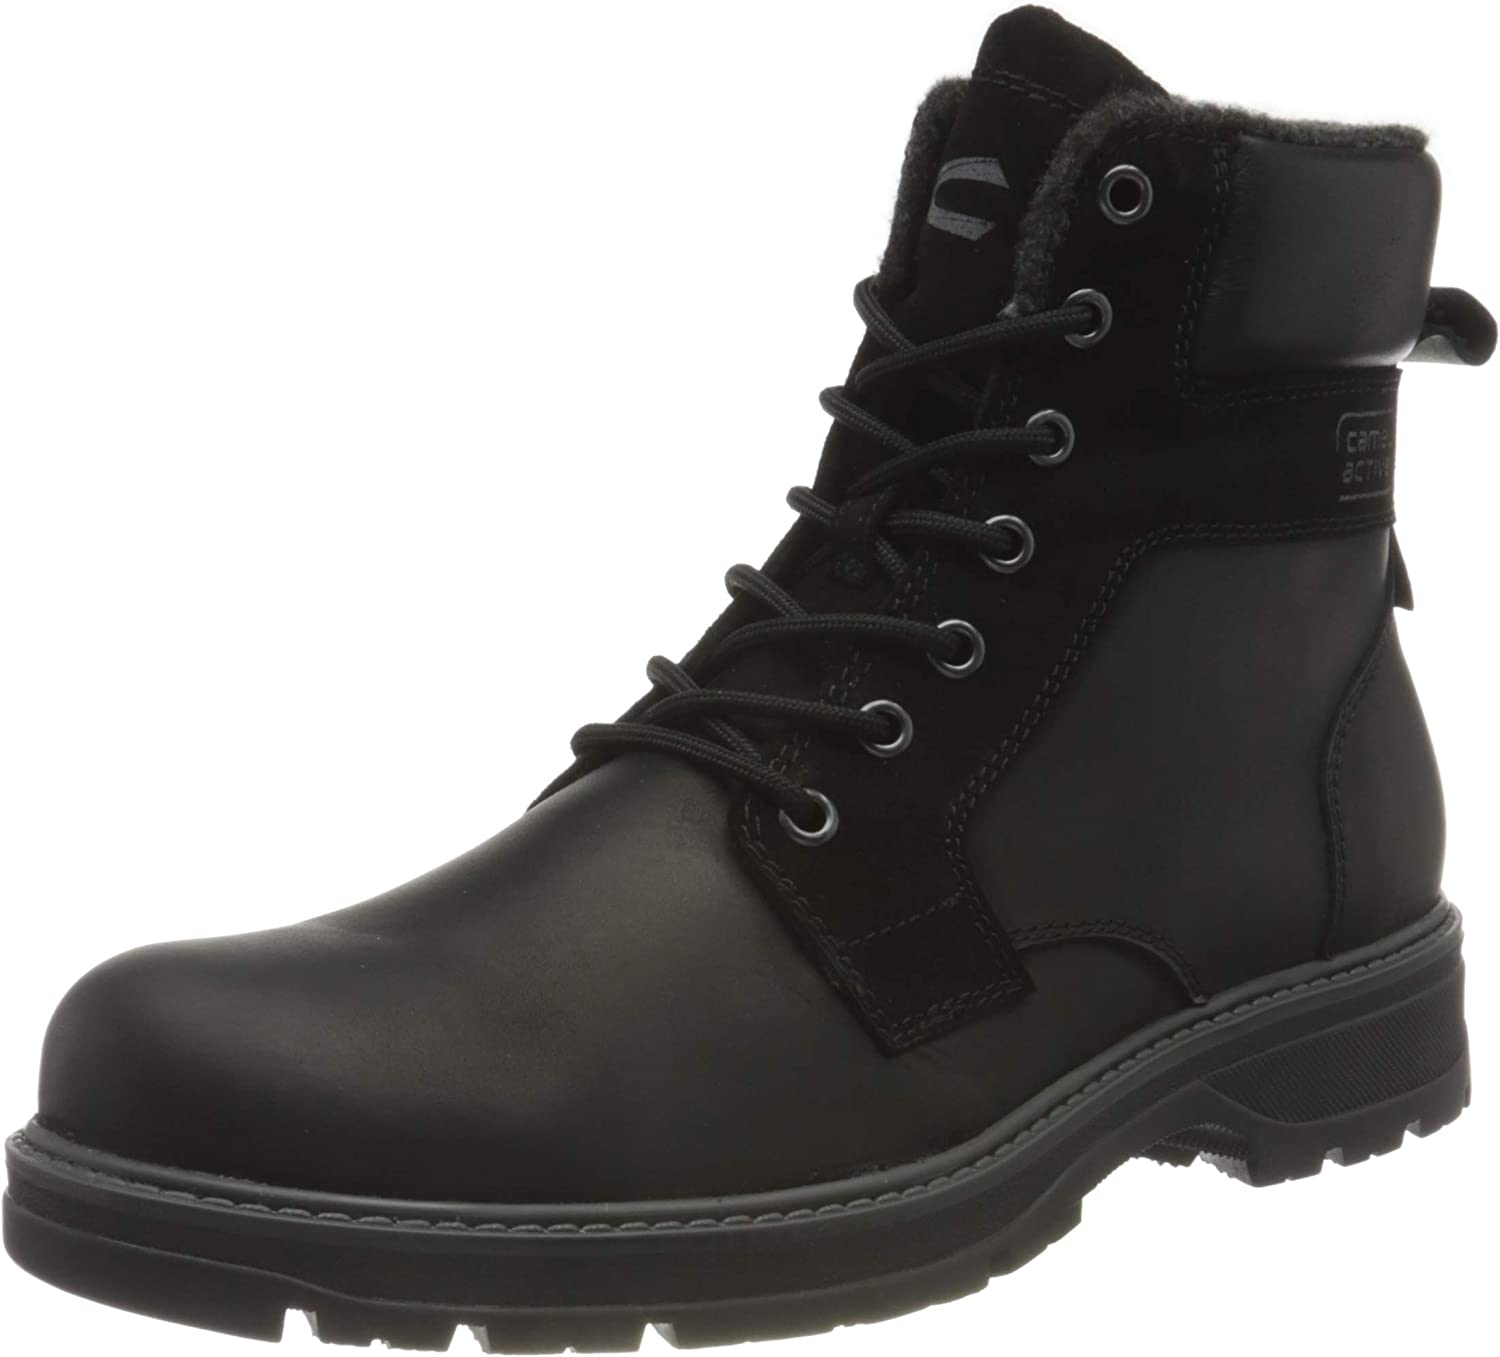 camel active Men's Fashion Regular store Classic High quality Boots